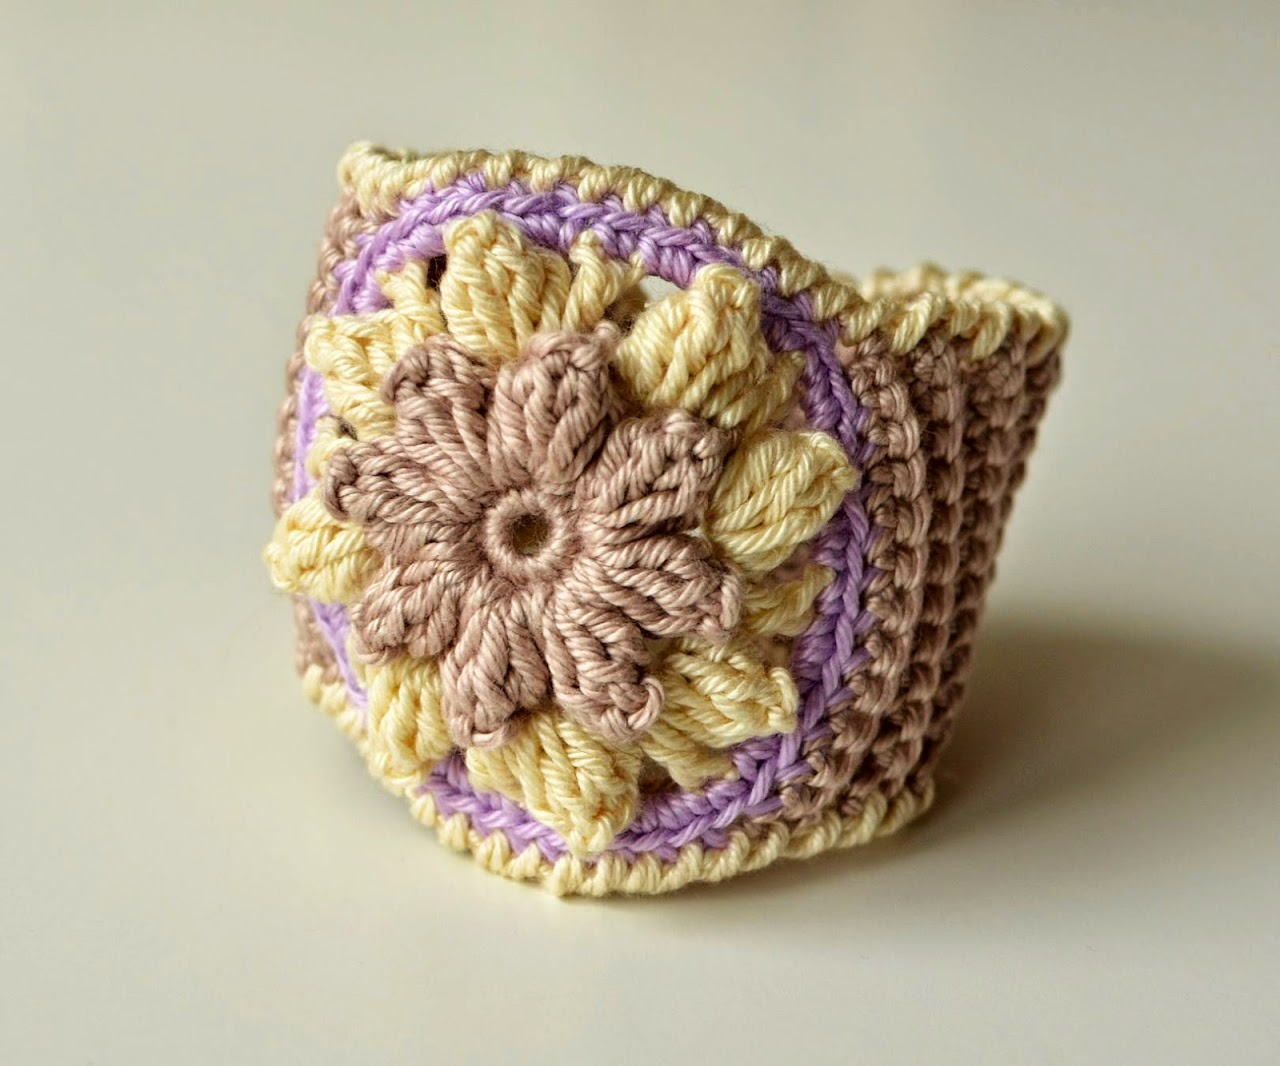 Crocheted Bracelet with Mandala